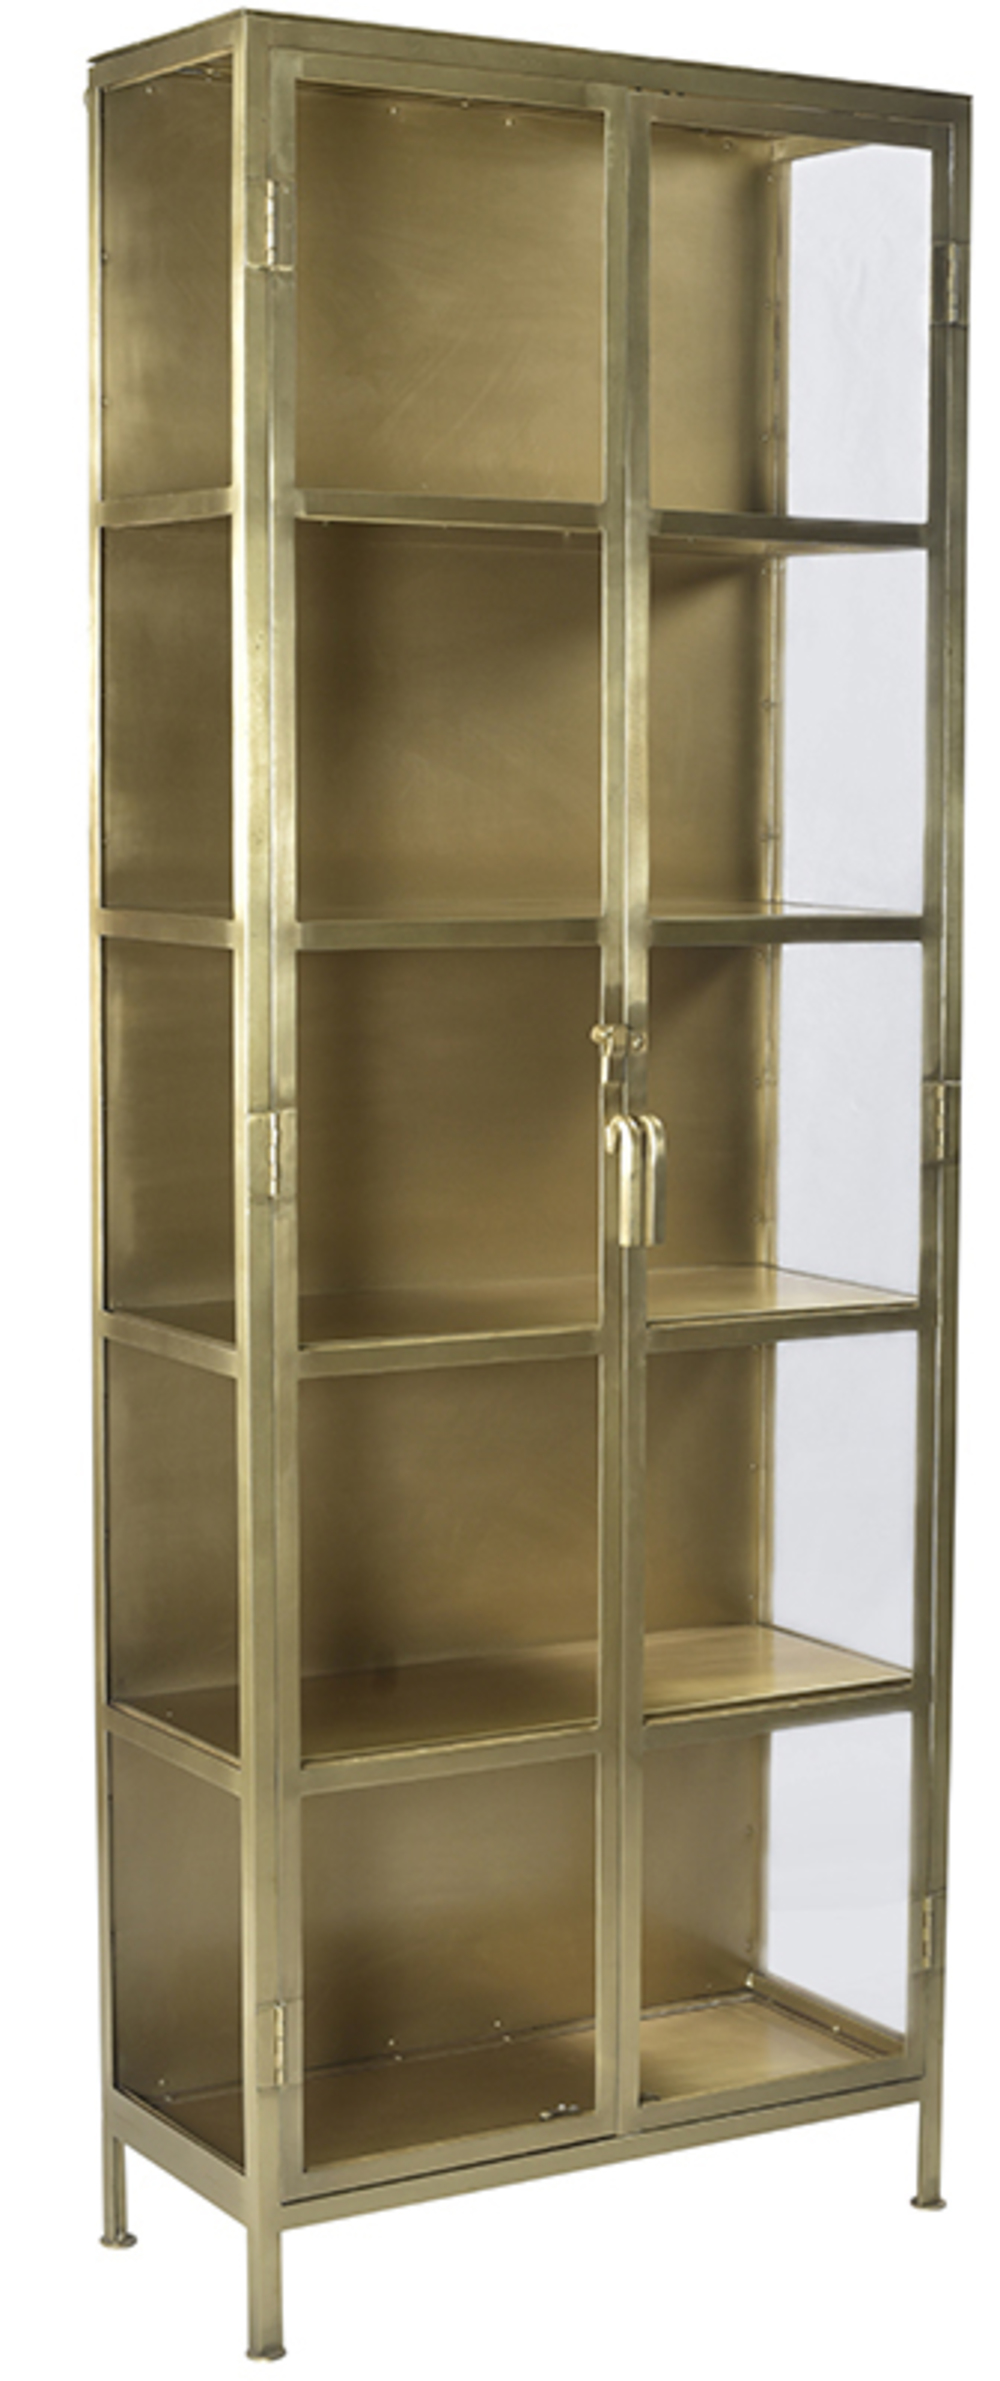 Dovetail Furniture - Wilkins Cabinet